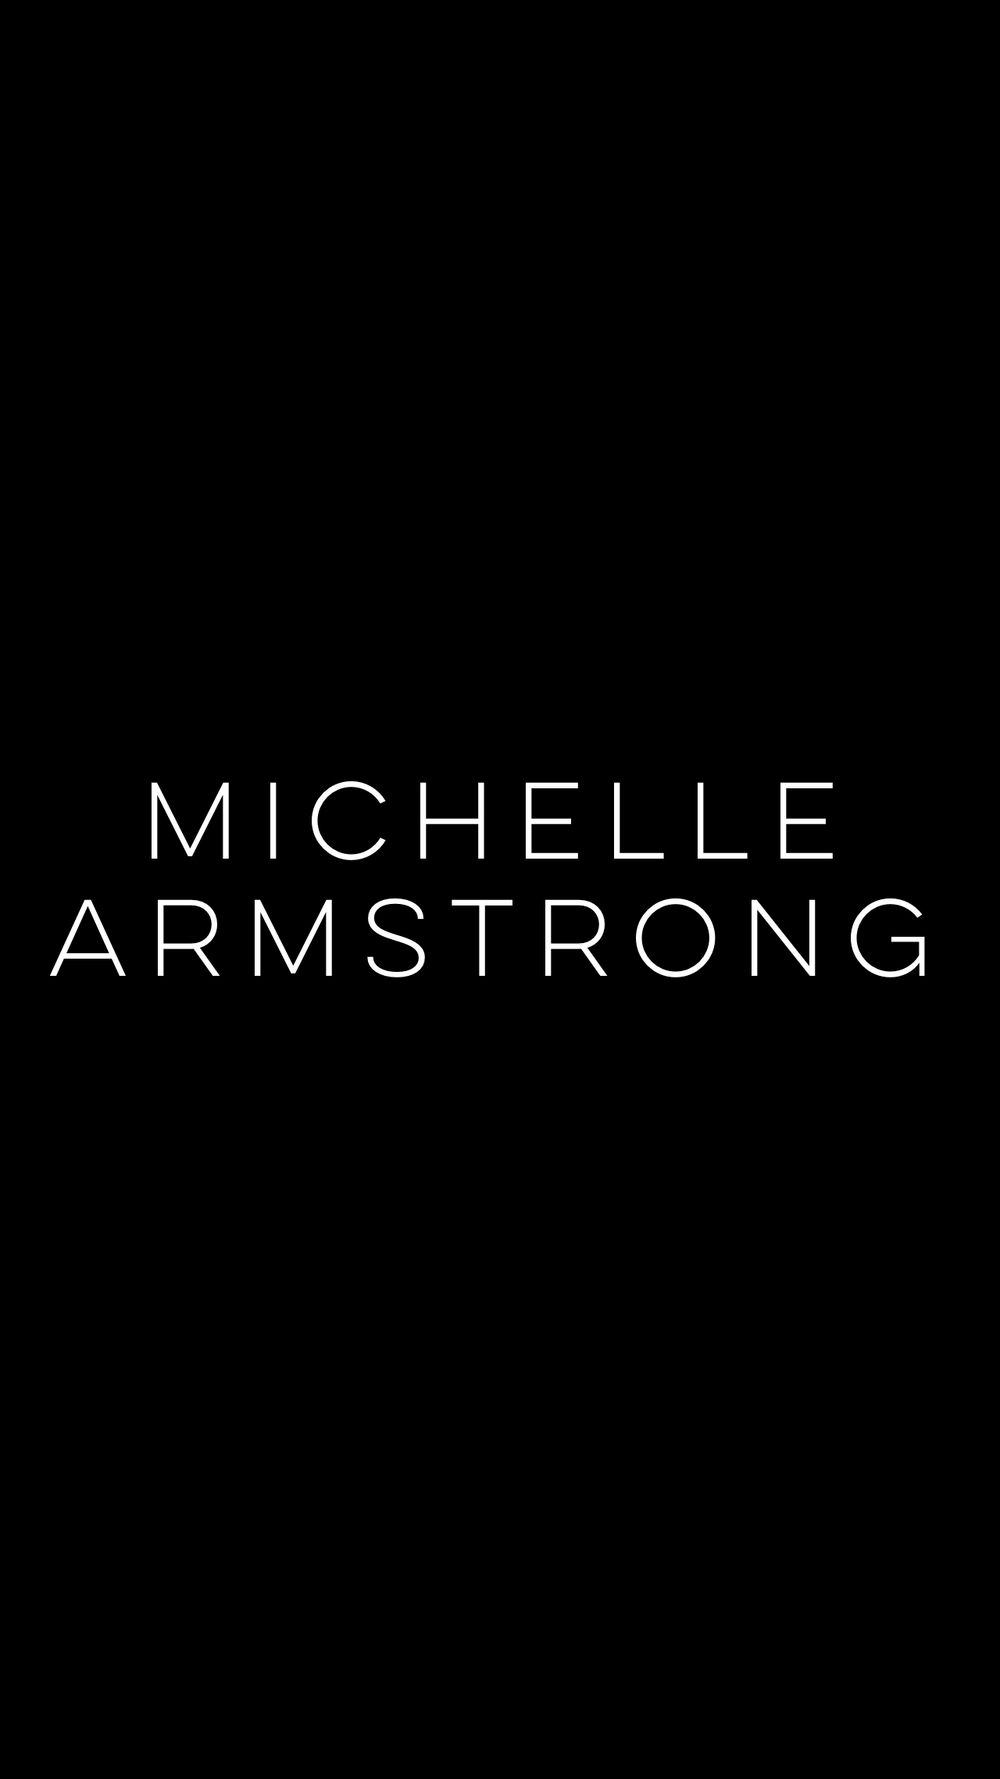 MICHELLE ARMSTRONG.jpg